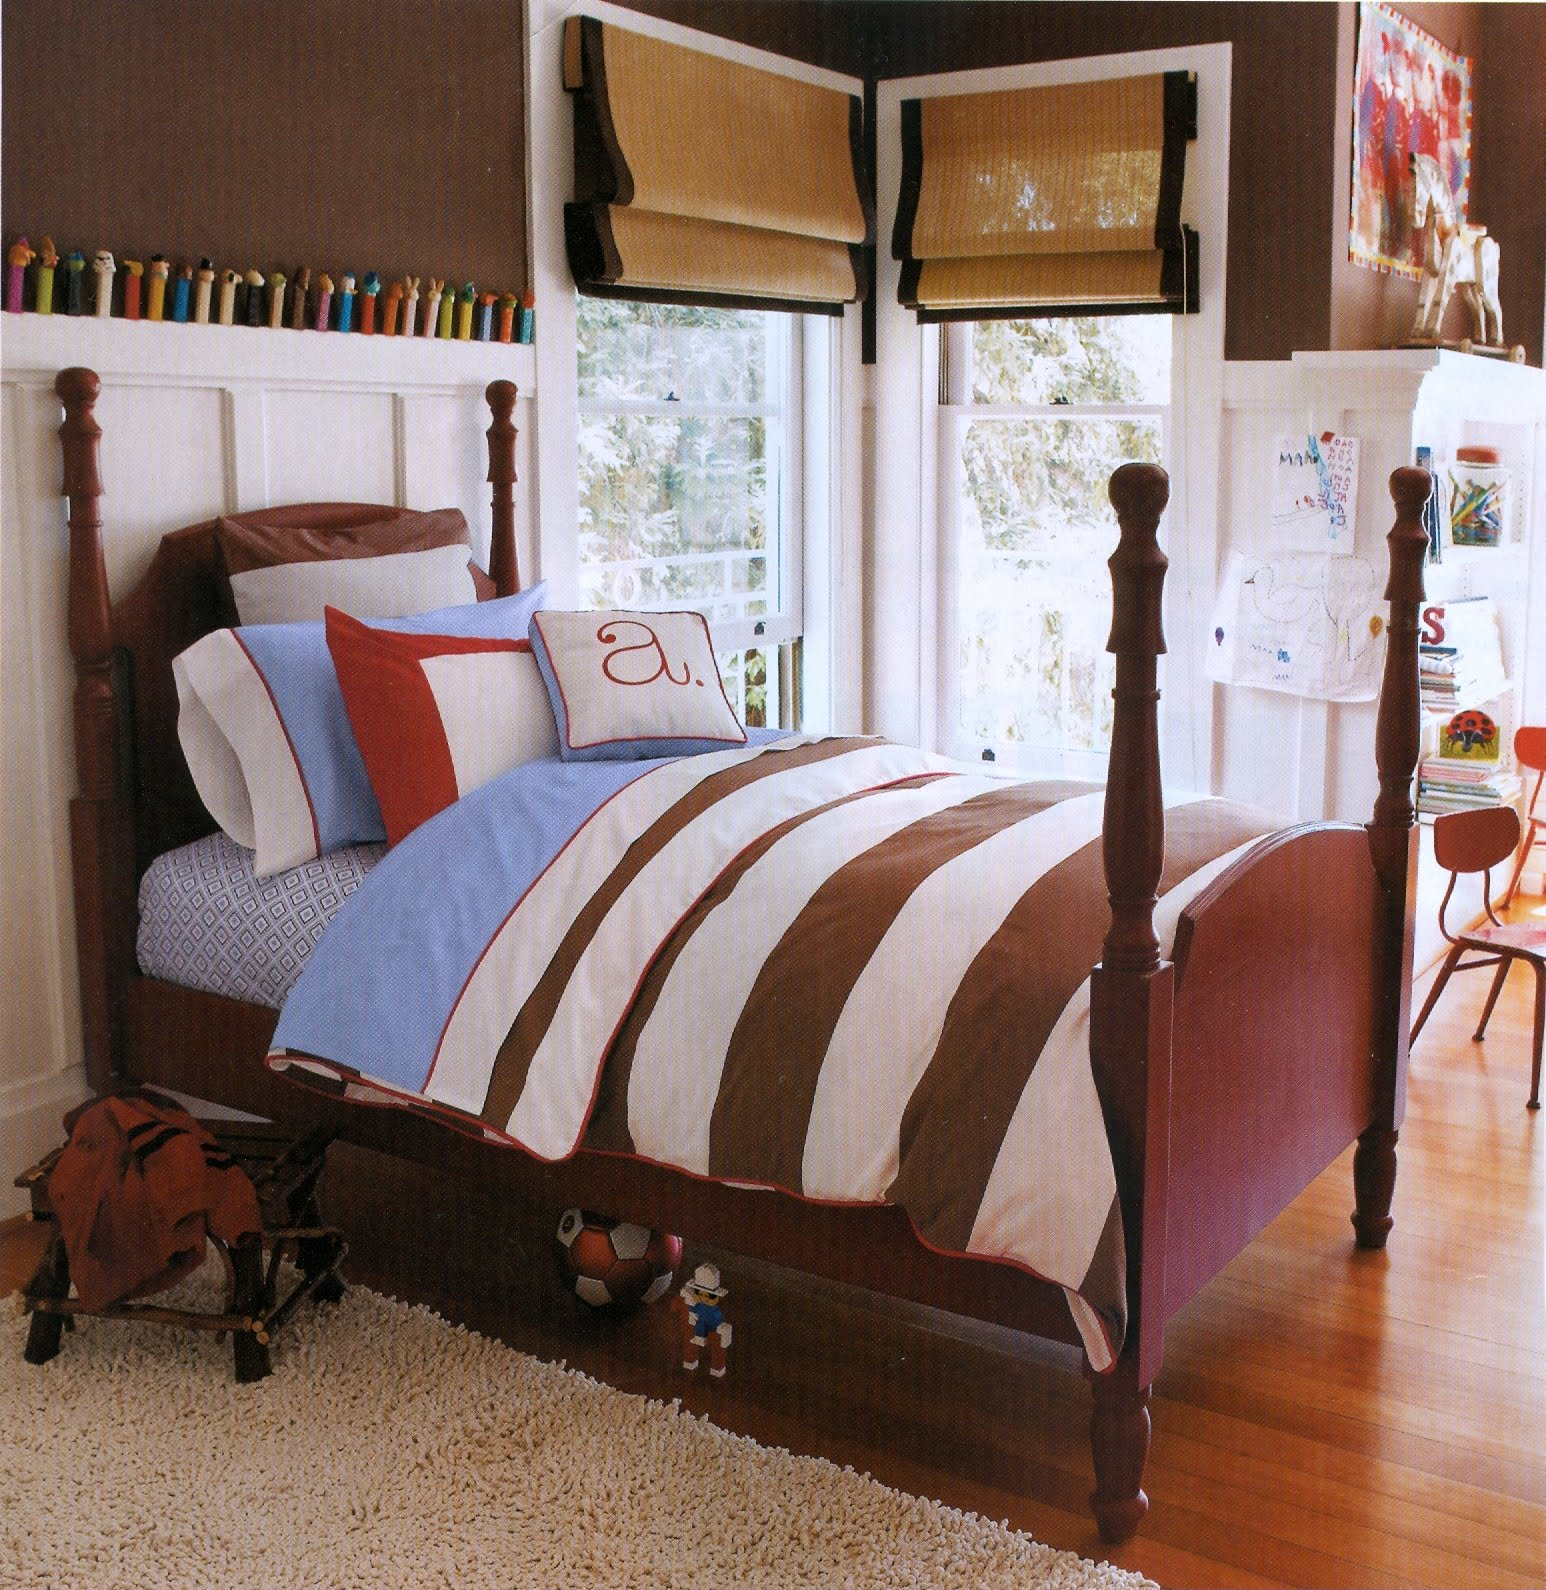 Boy bedroom ideas 5 year old bedroom decorating ideas for 5 year old bedroom ideas